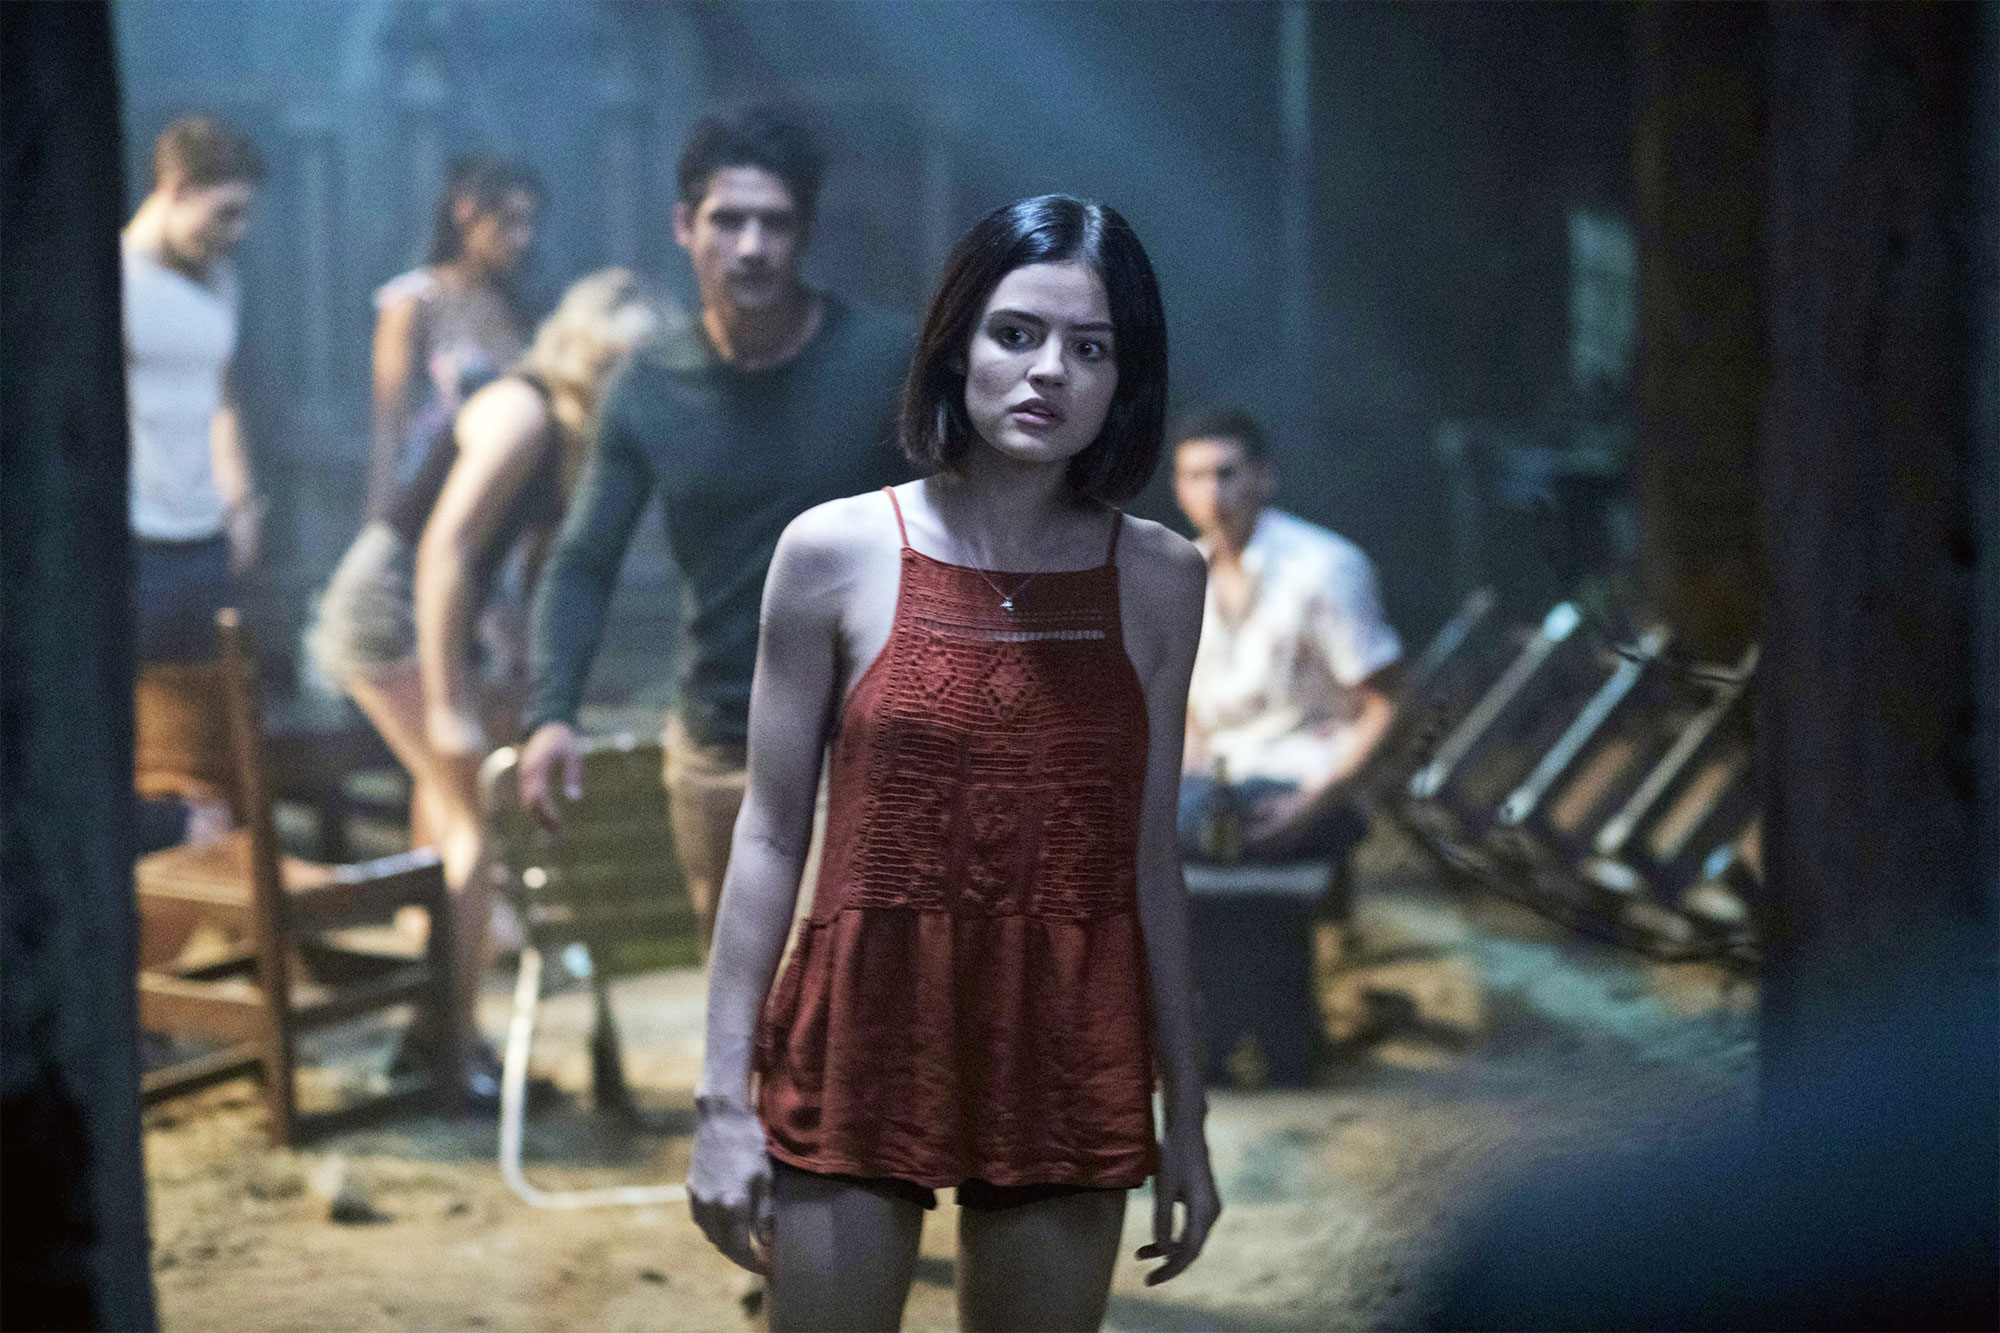 TRUTH OR DARE, front: Lucy Hale, rear: Tyler Posey, 2018. © Universal Pictures/courtesy Everett